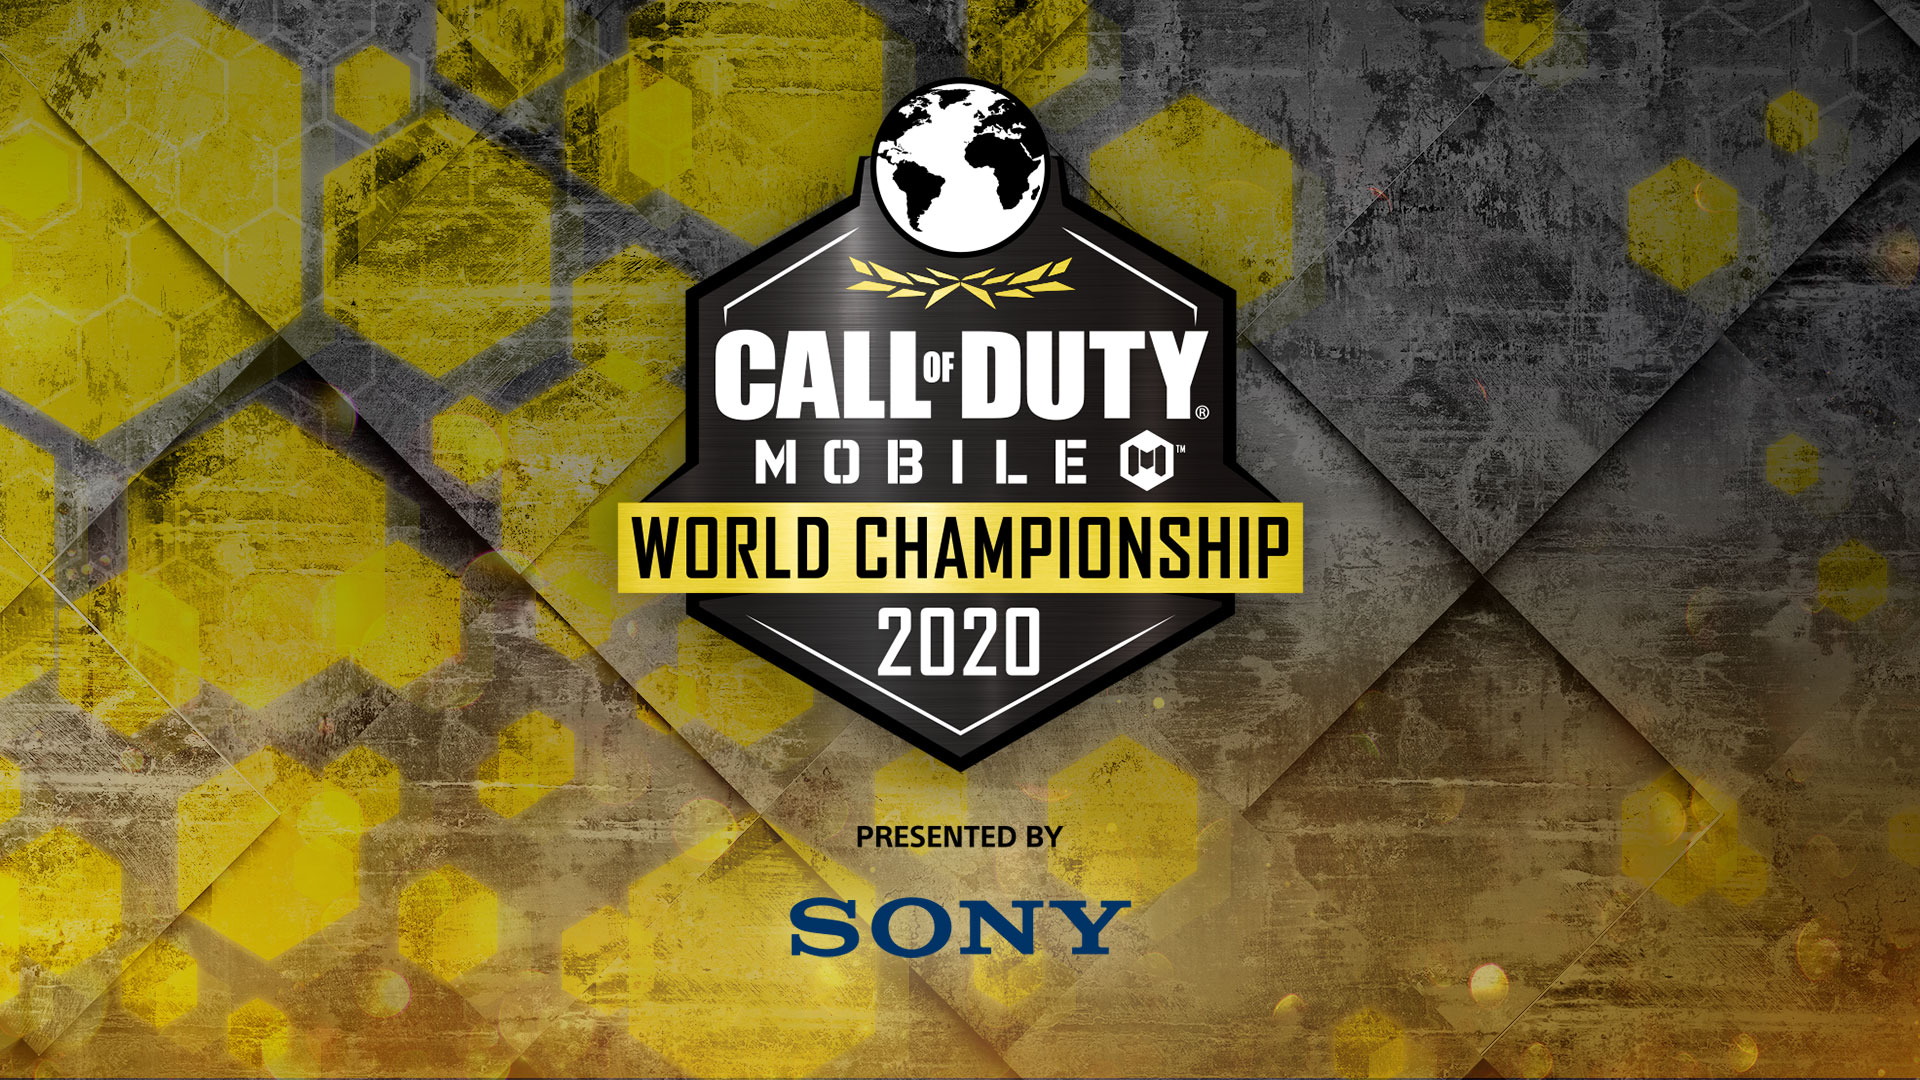 Announcing The Call Of Duty Mobile World Championship 2020 Tournament Starting On April 30